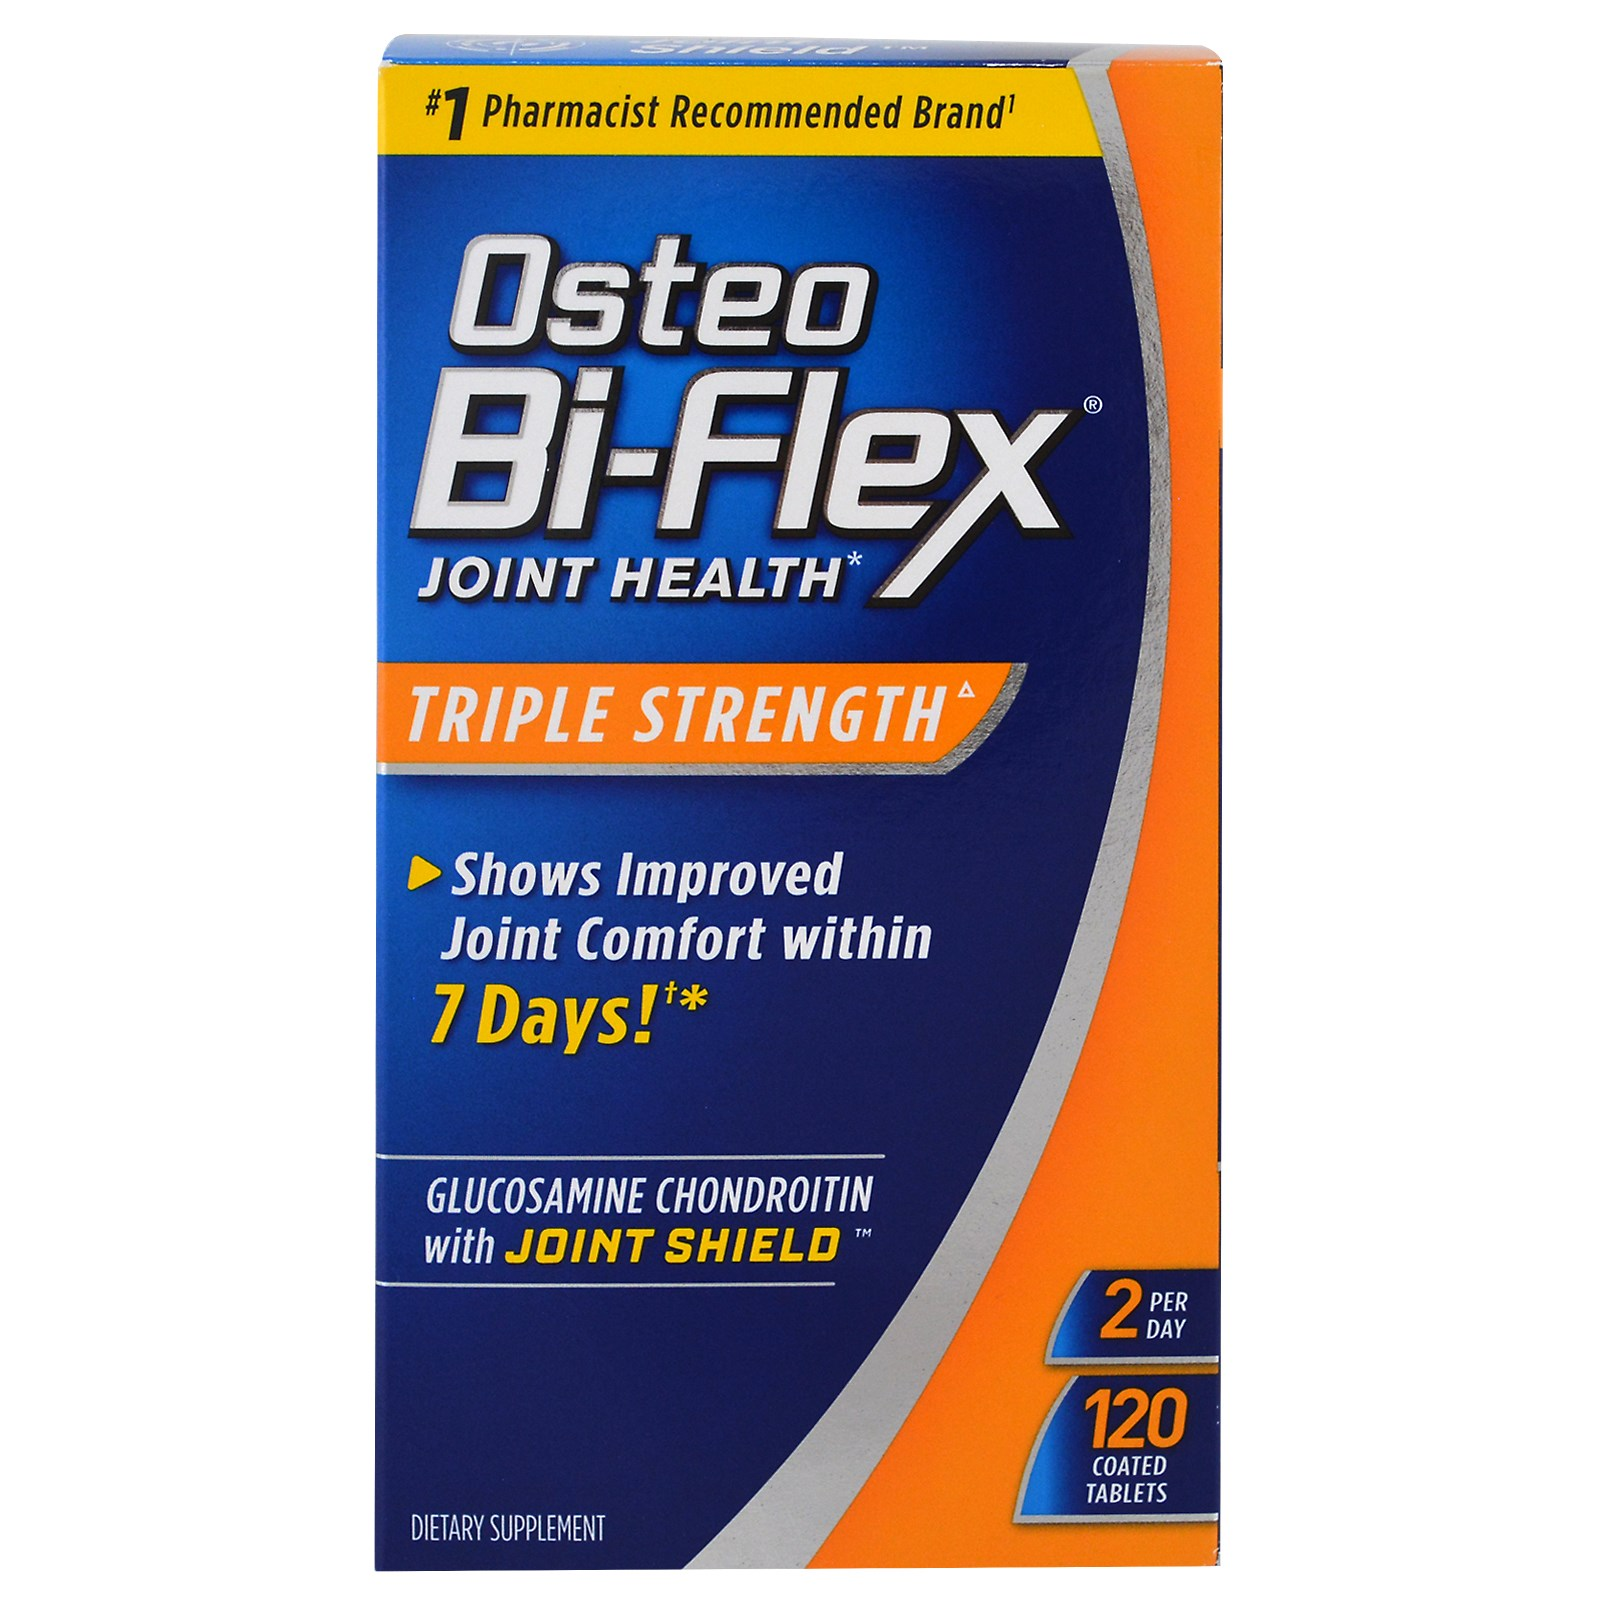 Osteo Bi-Flex, Glucosamine Chondroitin with 5-Loxin Advanced Joint Care, Утроенная сила в таблетках (120 штук)